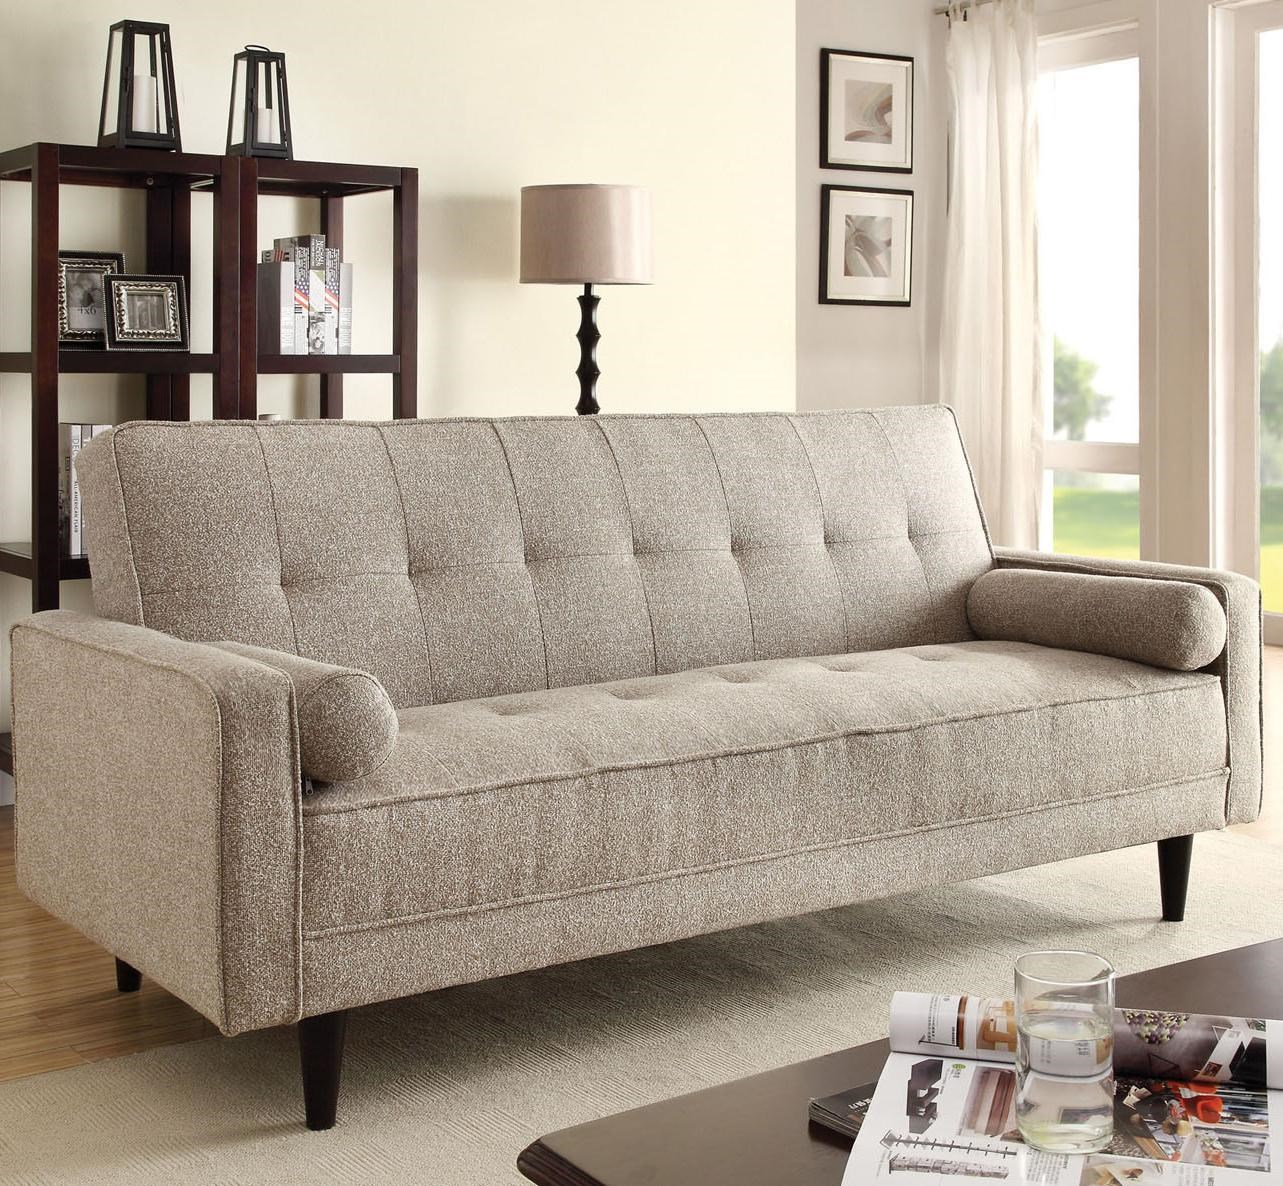 Acme Furniture Edana Sand Linen Adjustable Sofa With 2 Pillows